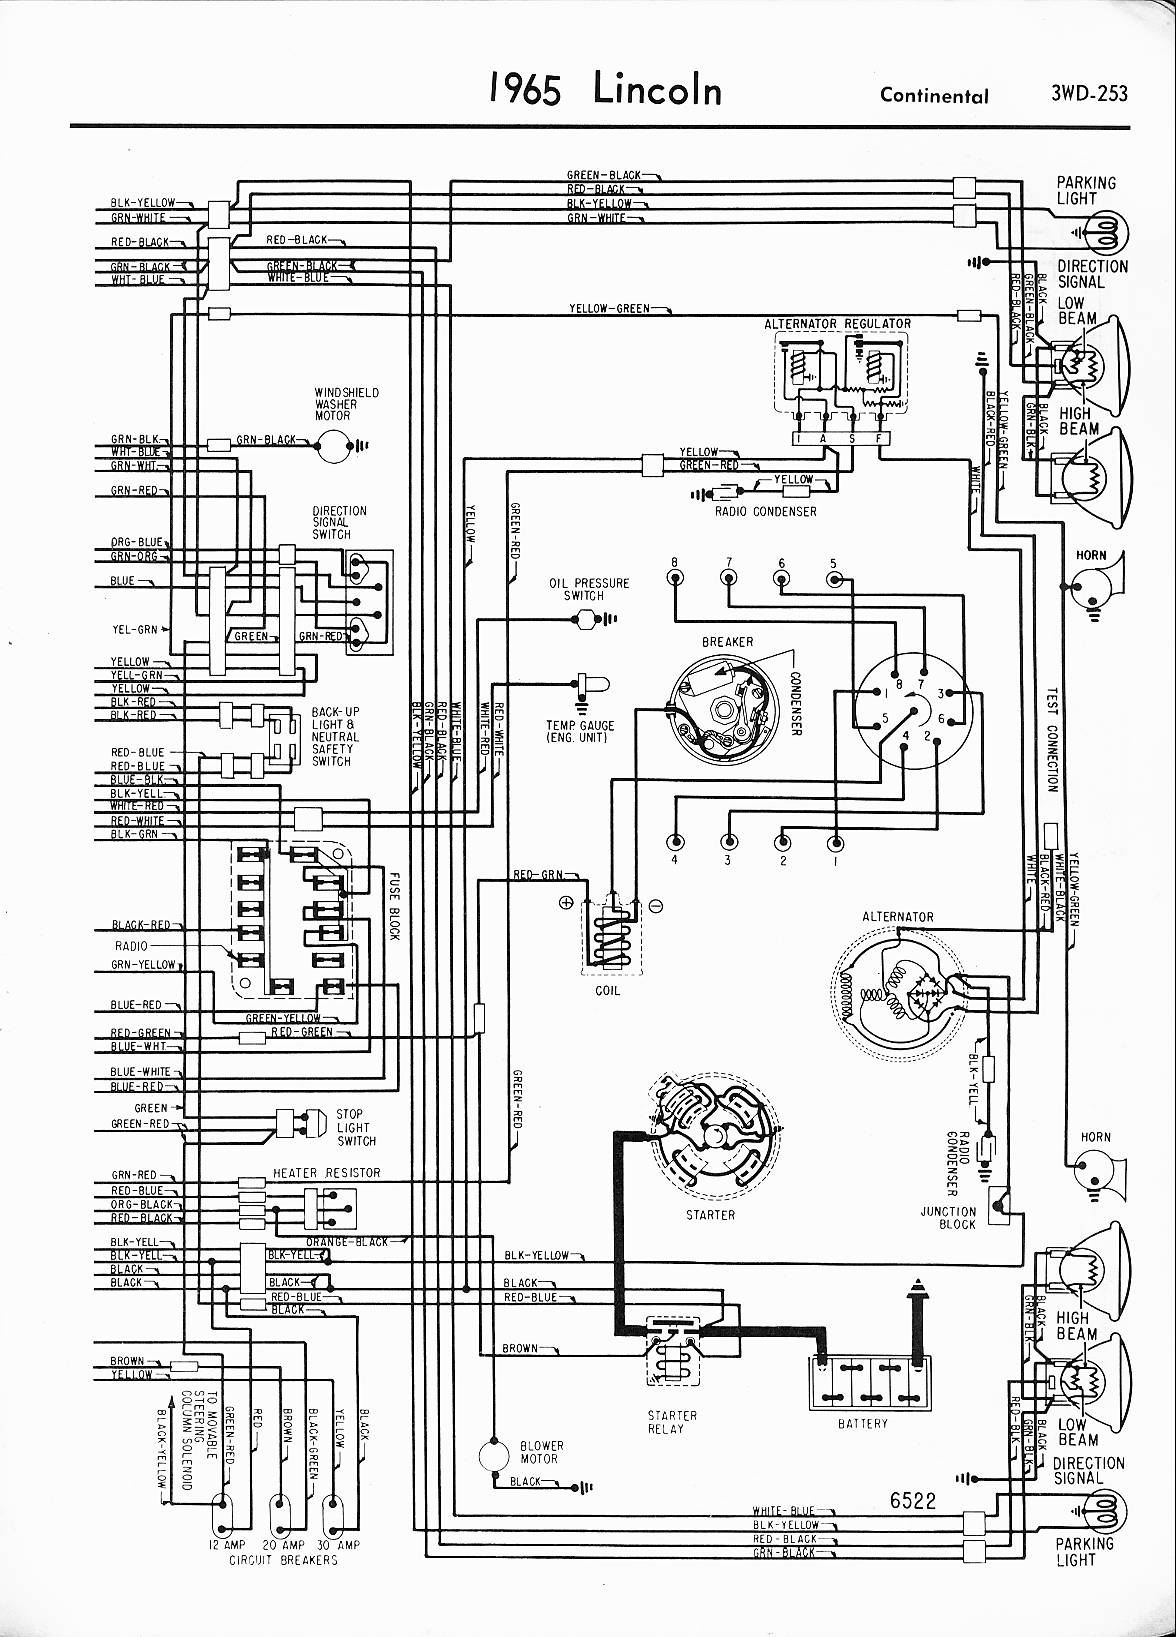 2000 lincoln continental fuel pump wiring diagram